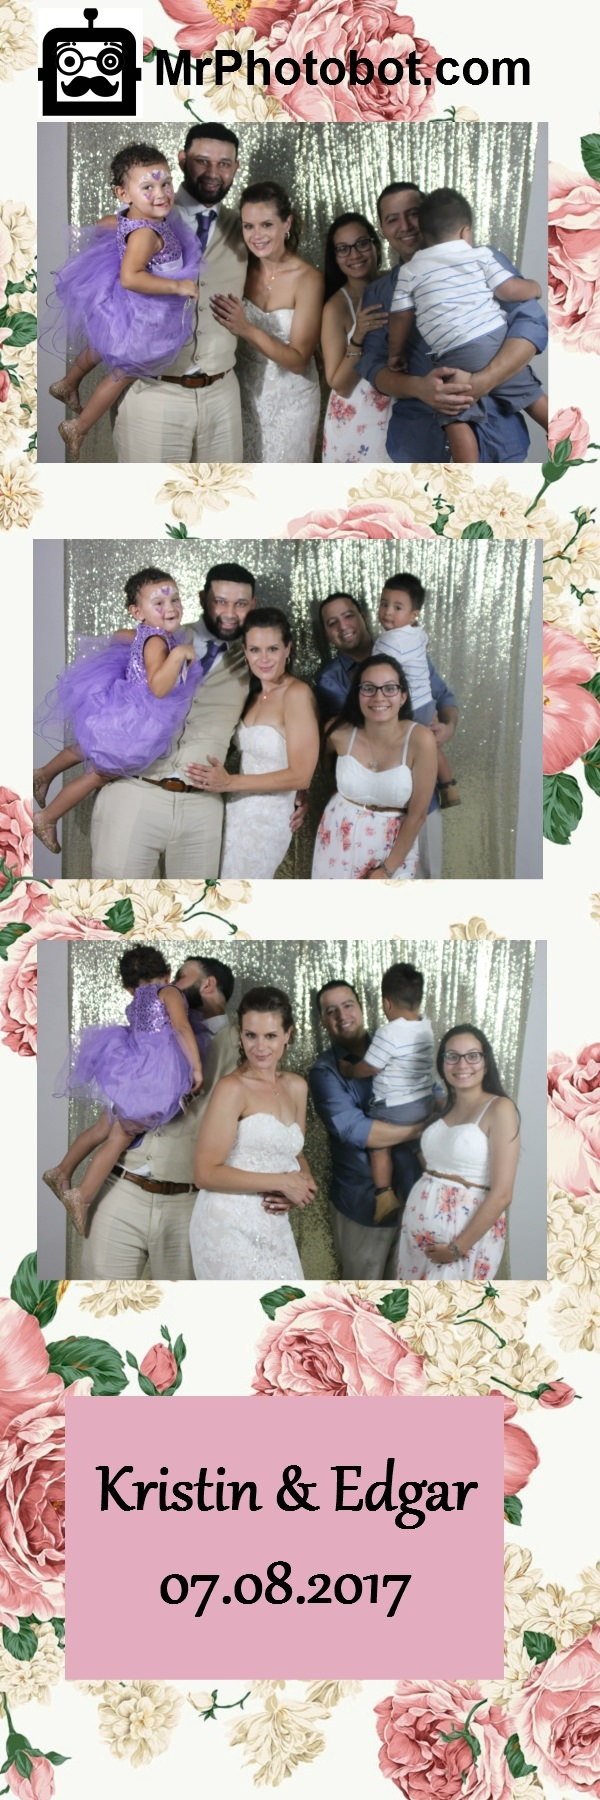 mrphotobot_wedding_floral_photostrip_mini.jpg